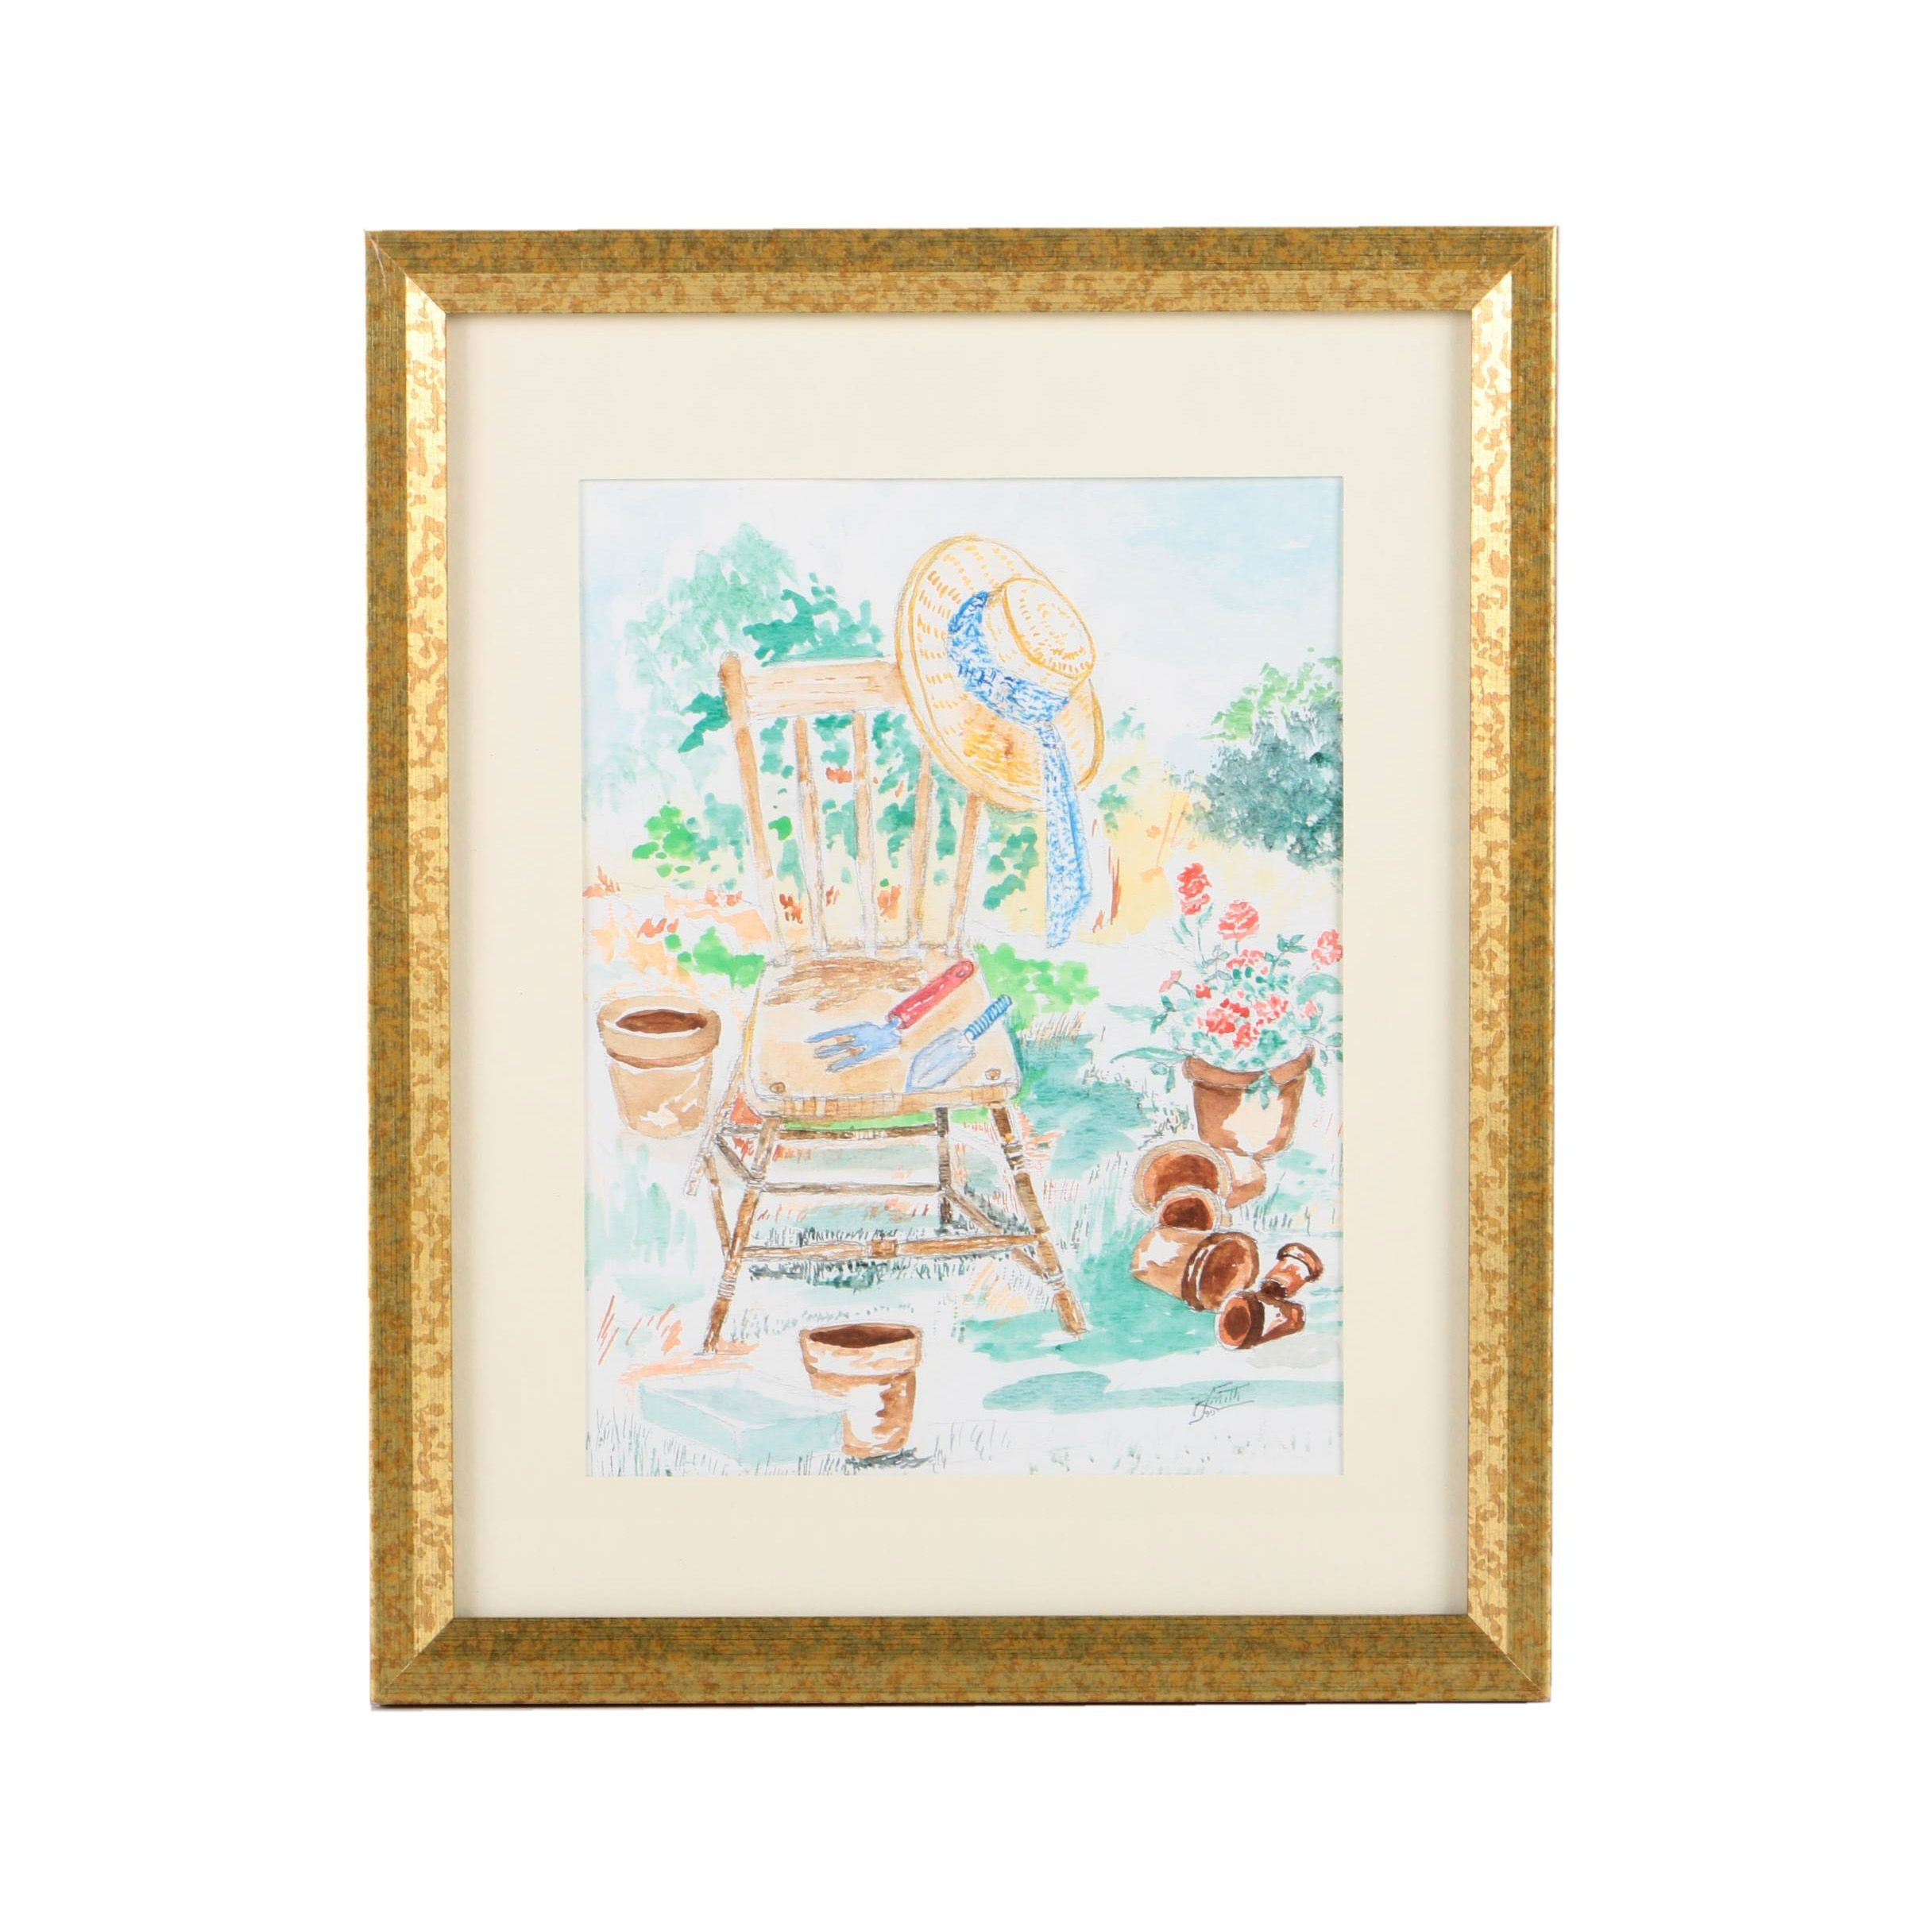 Raymond Smith Watercolor Painting on Paper of Garden Scene